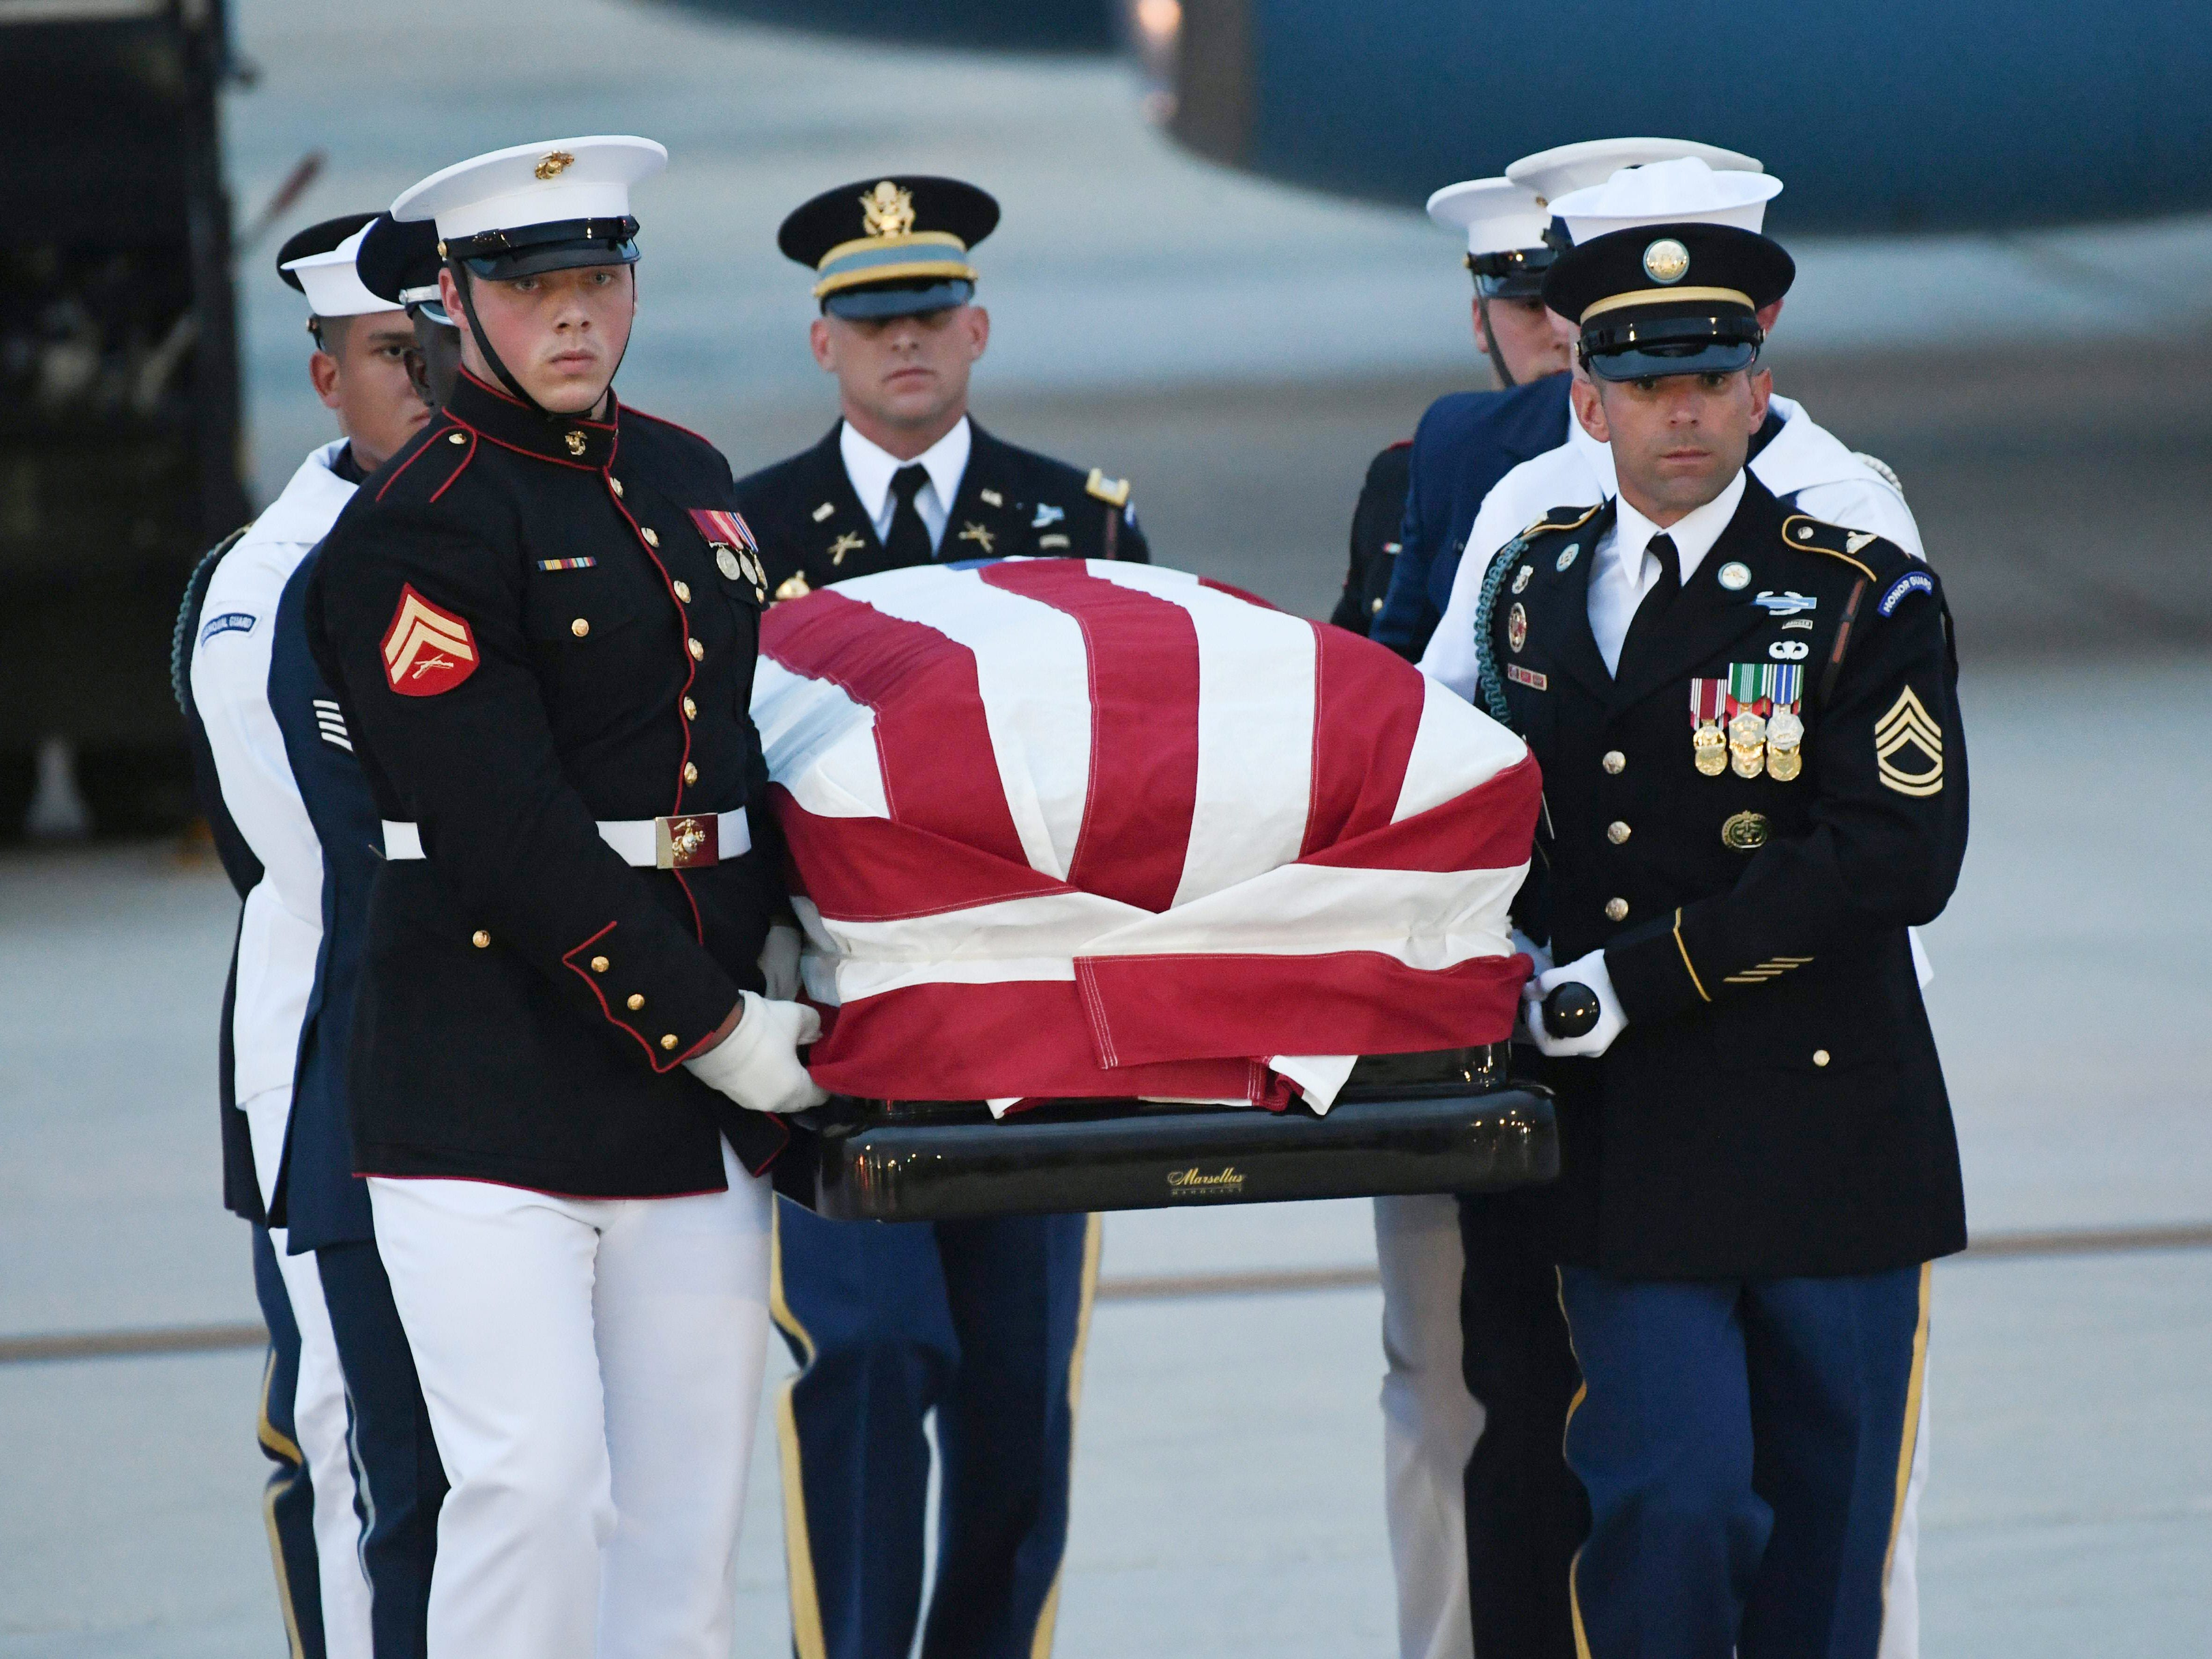 The flag-draped casket of the late US Senator John McCain, Republican of Arizona, arrives on a military airplane at Joint Base Andrews in Maryland, August 30, 2018. (Photo by SAUL LOEB / AFP)SAUL LOEB/AFP/Getty Images ORG XMIT: Senator J ORIG FILE ID: AFP_18Q461